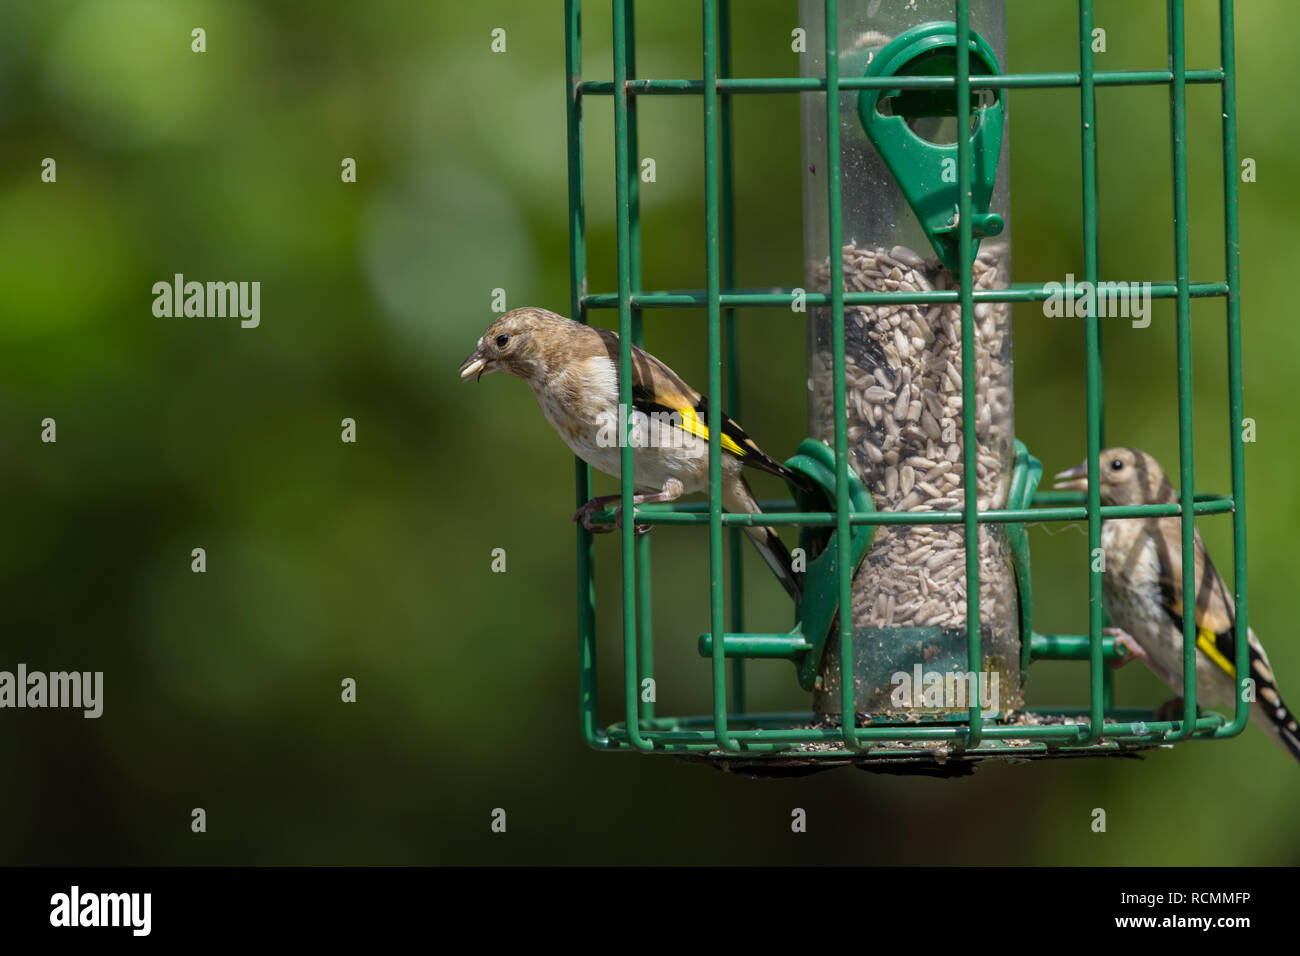 Godfinch. Carduelis carduelis. Two juvenile birds on squirrel proof sunflower feeder. - Stock Image